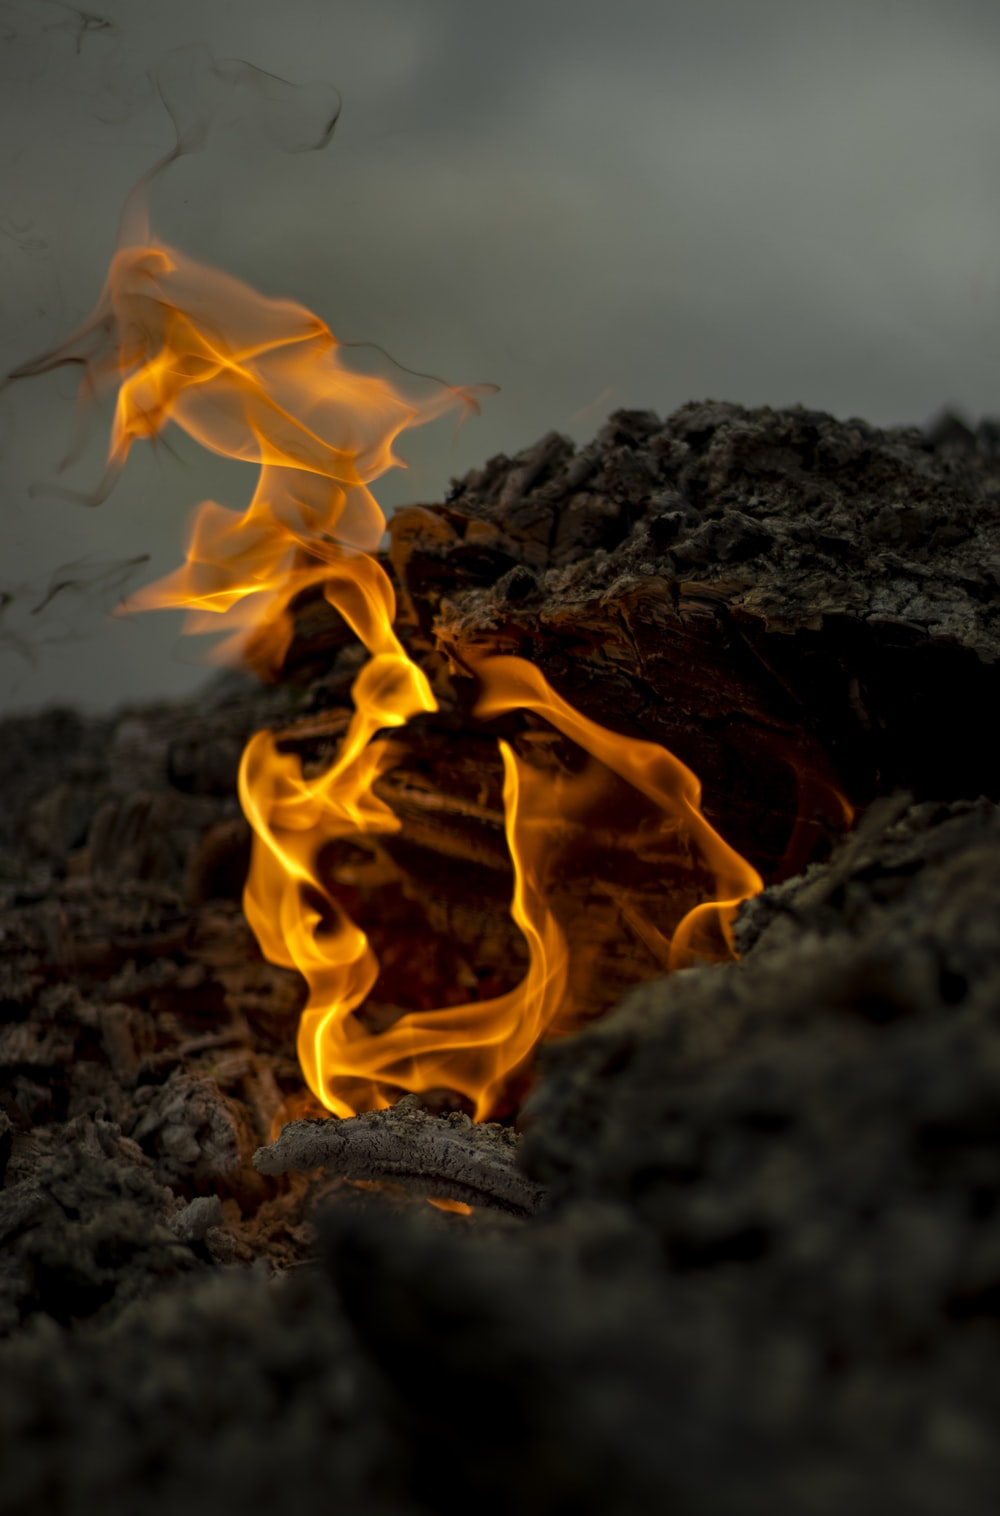 close-up photo of fire